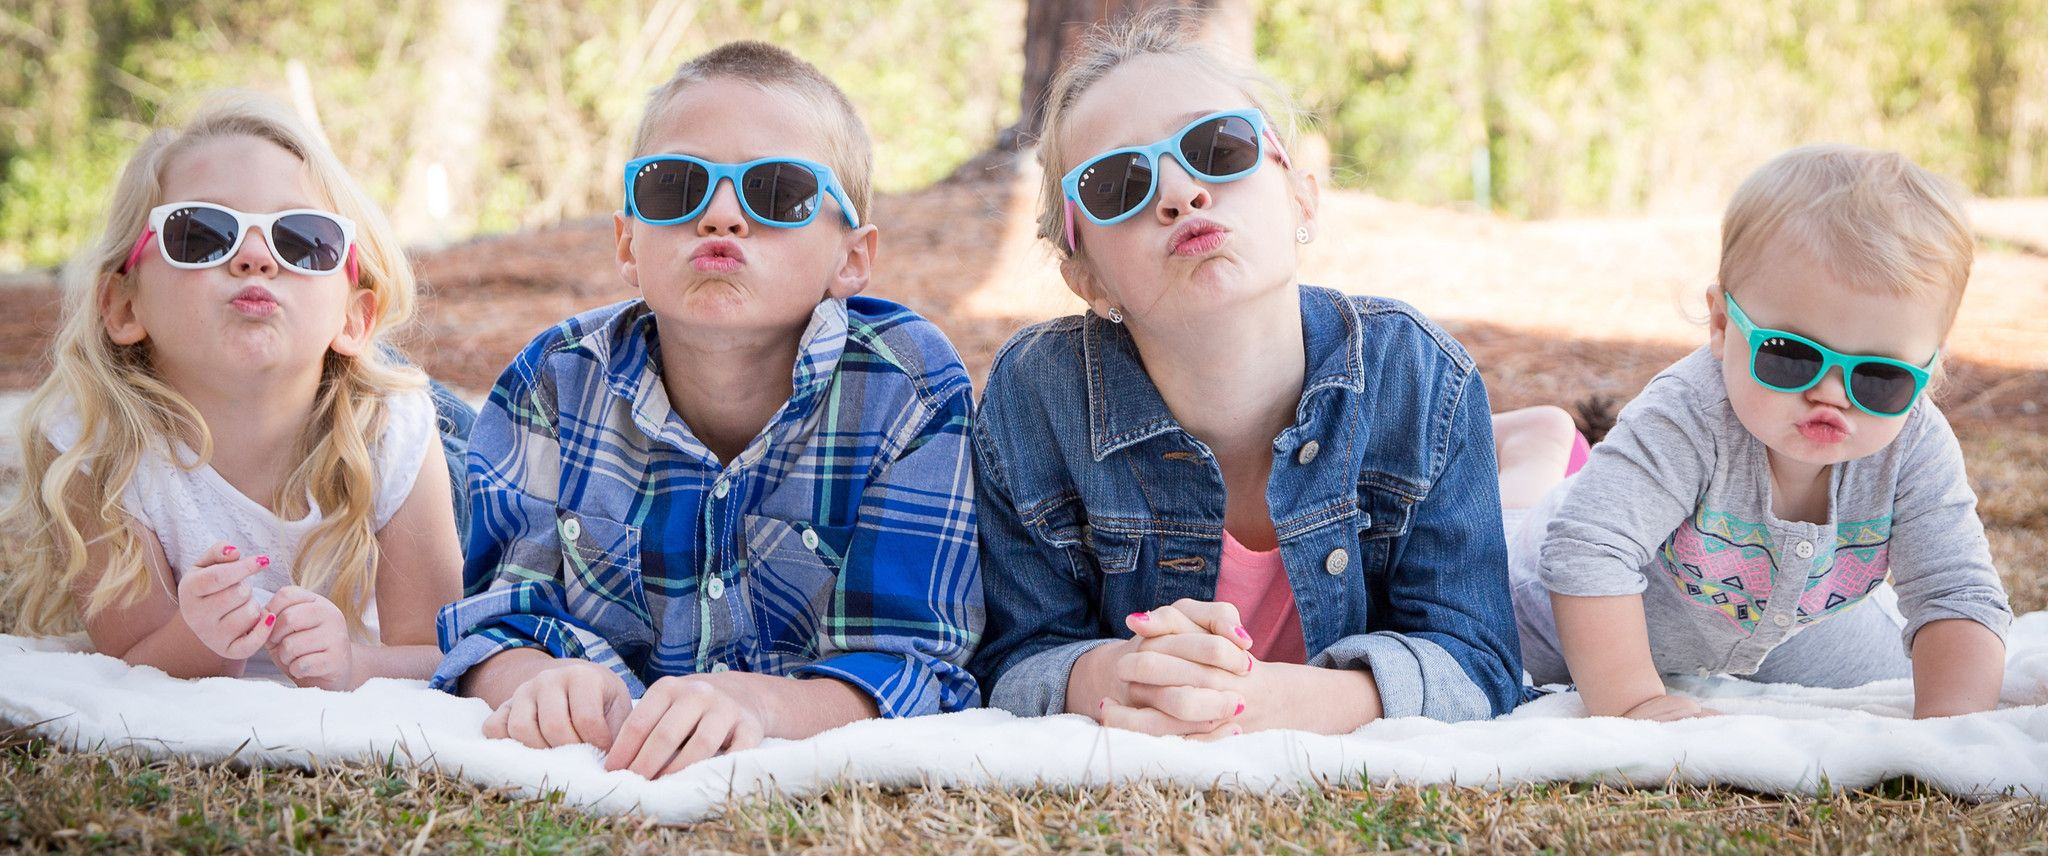 54bbe9e012 RoShamBo Baby Shades. Because little people deserve big people shades.  Available at Lollypop Kids!